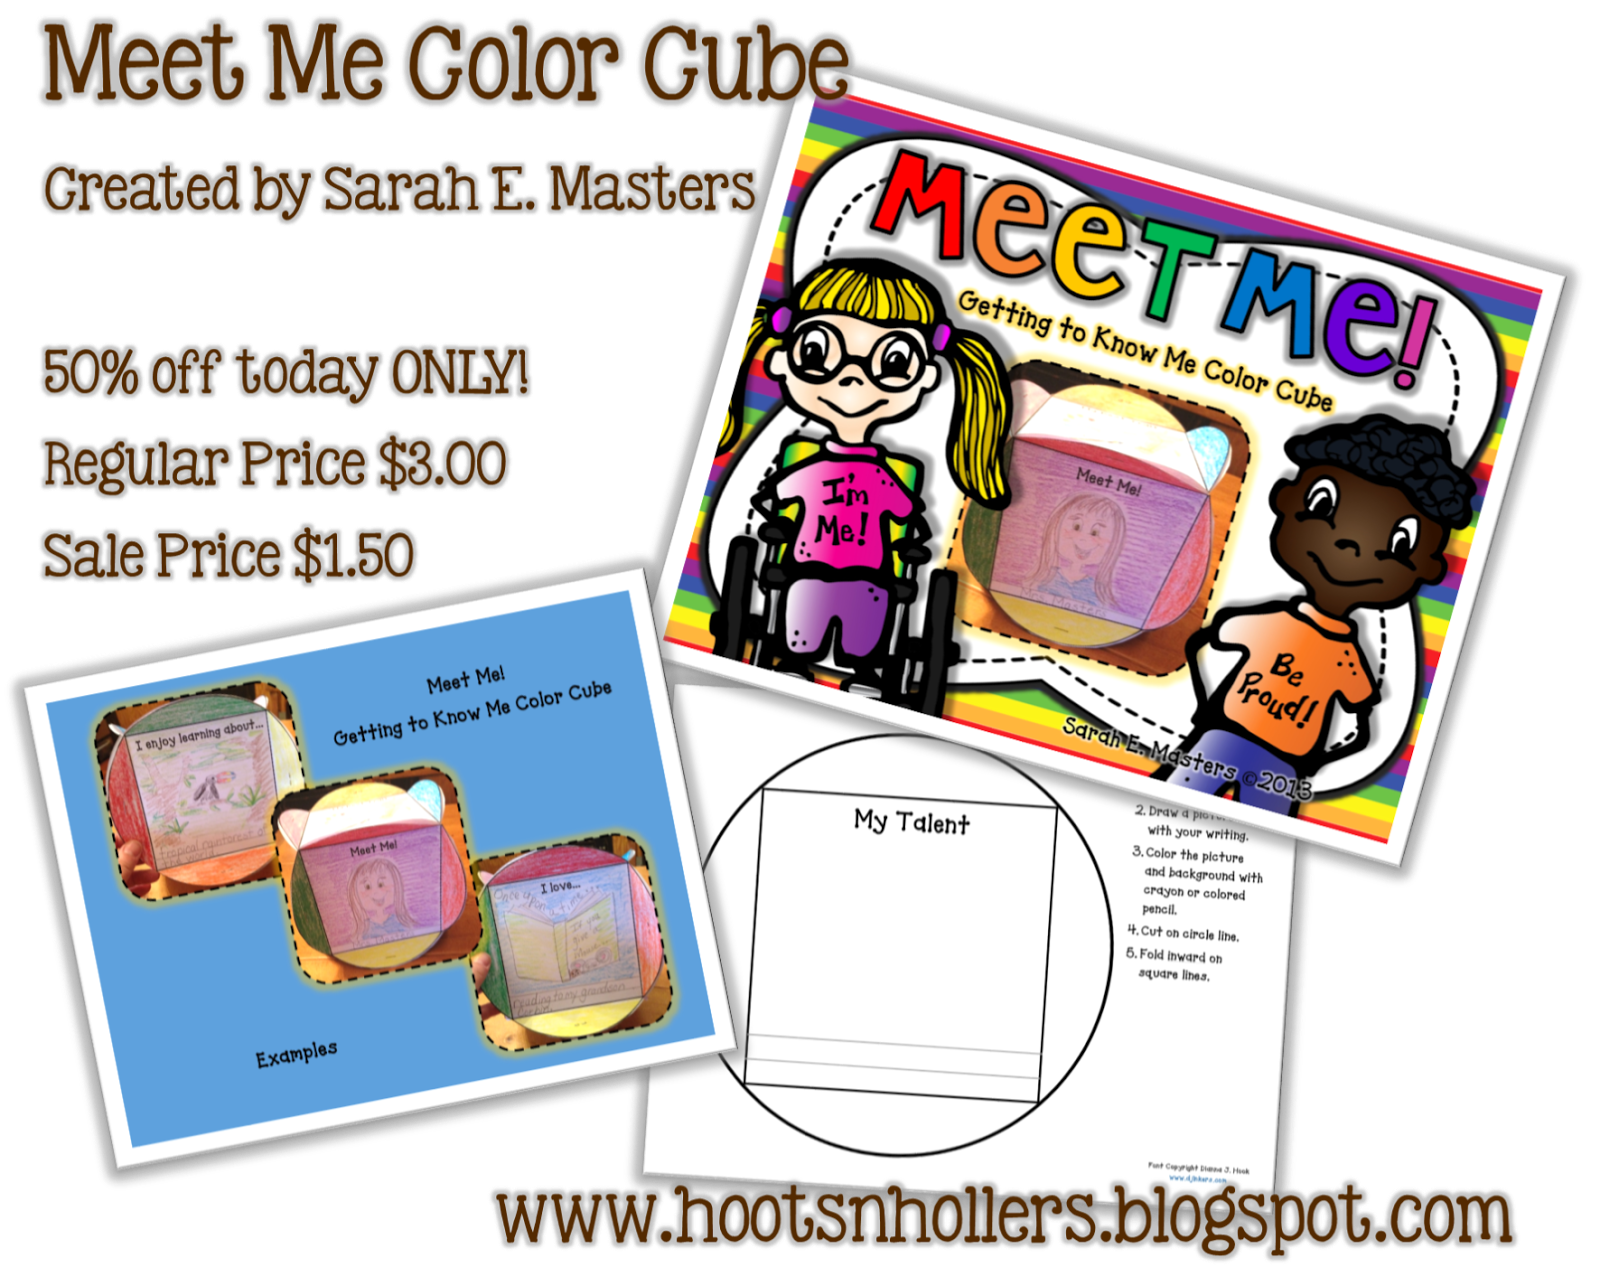 http://www.teacherspayteachers.com/Product/Meet-Me-Getting-to-Know-Me-Color-Cube-Back-to-School-Activity-717866